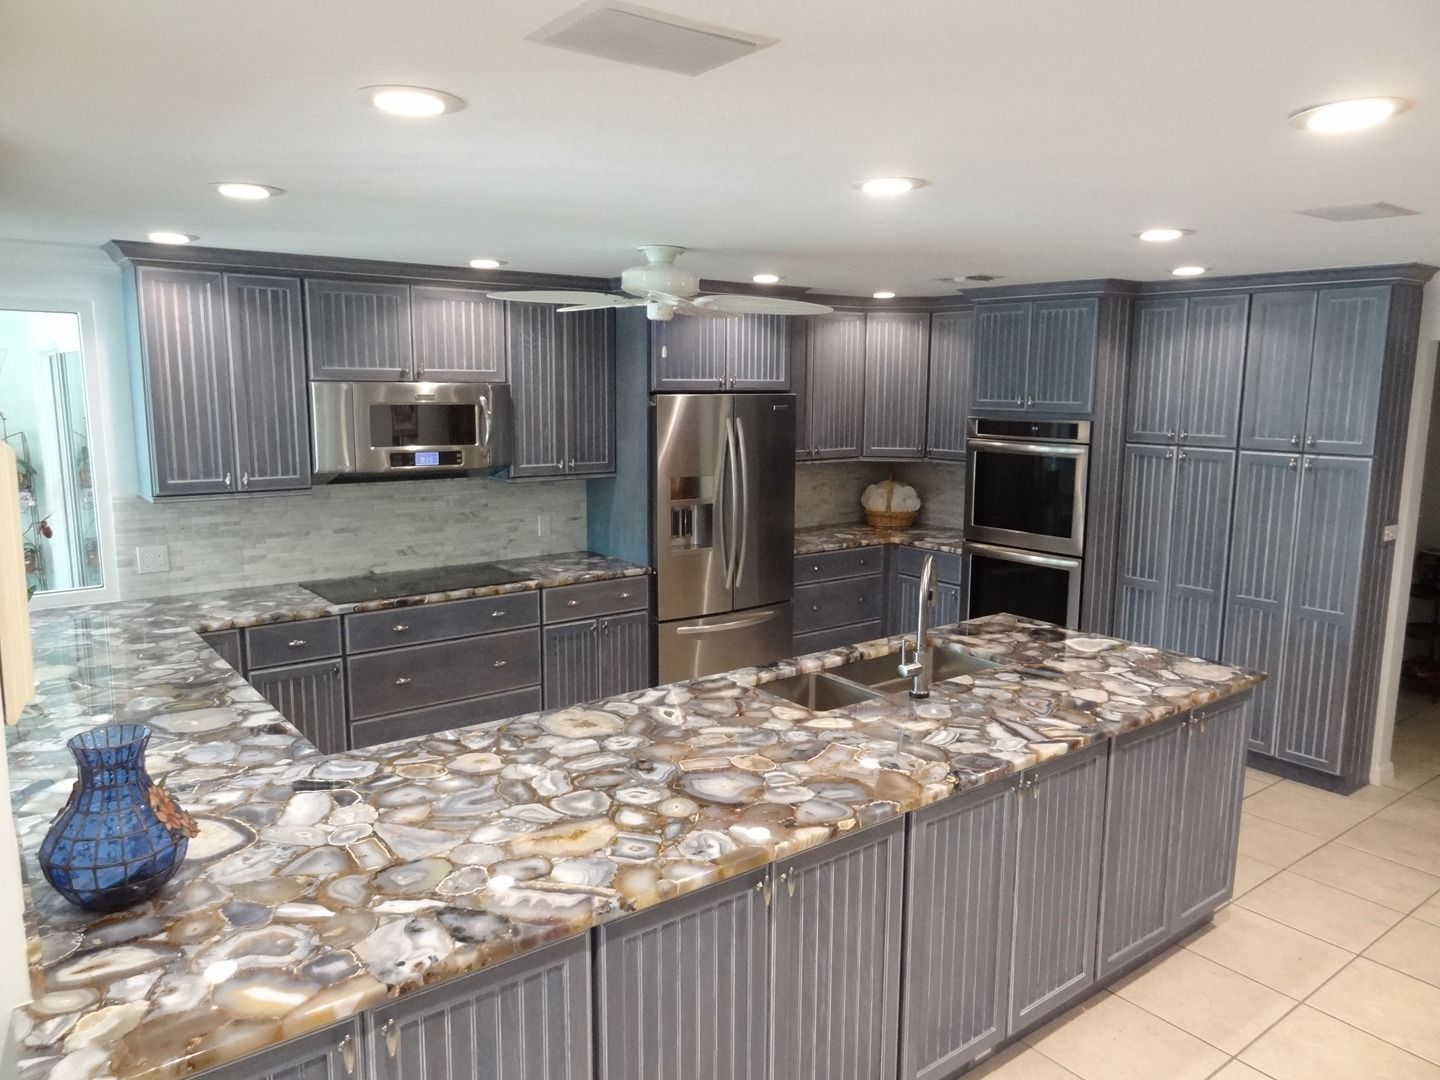 Remodeling Kitchens And Bathrooms   Alley Design To Build   Naples, Fl